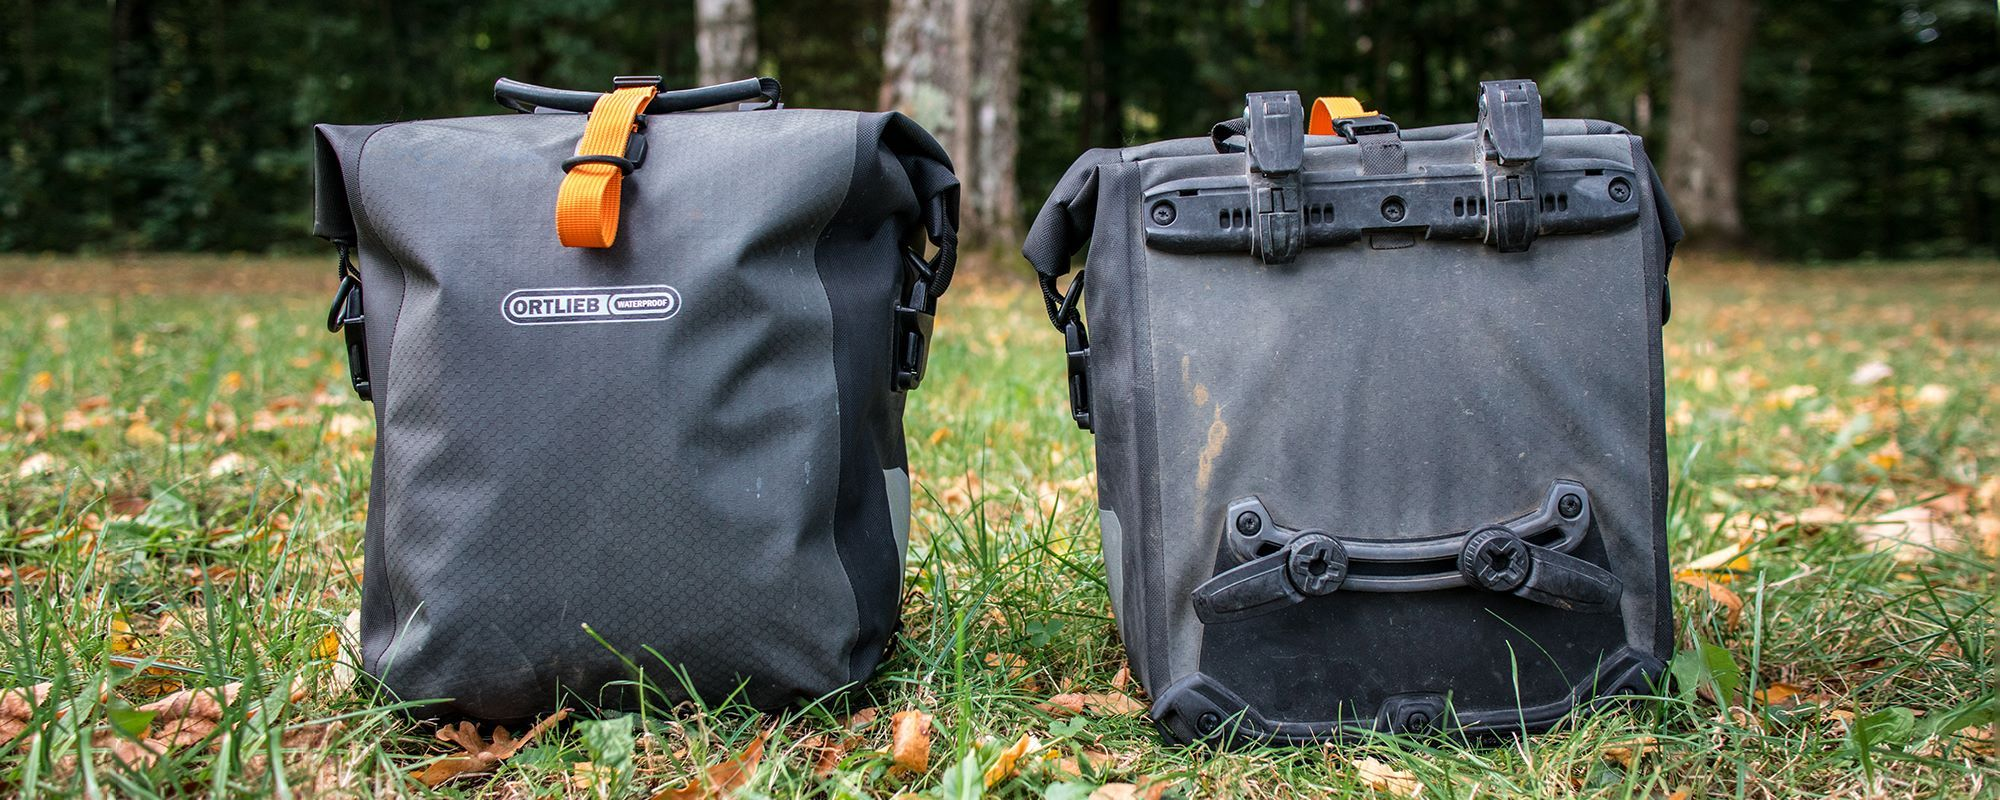 Ortlieb Gravel-Pack Test & Experiences (2 years long term test) - waterproof bike bags for offroad use